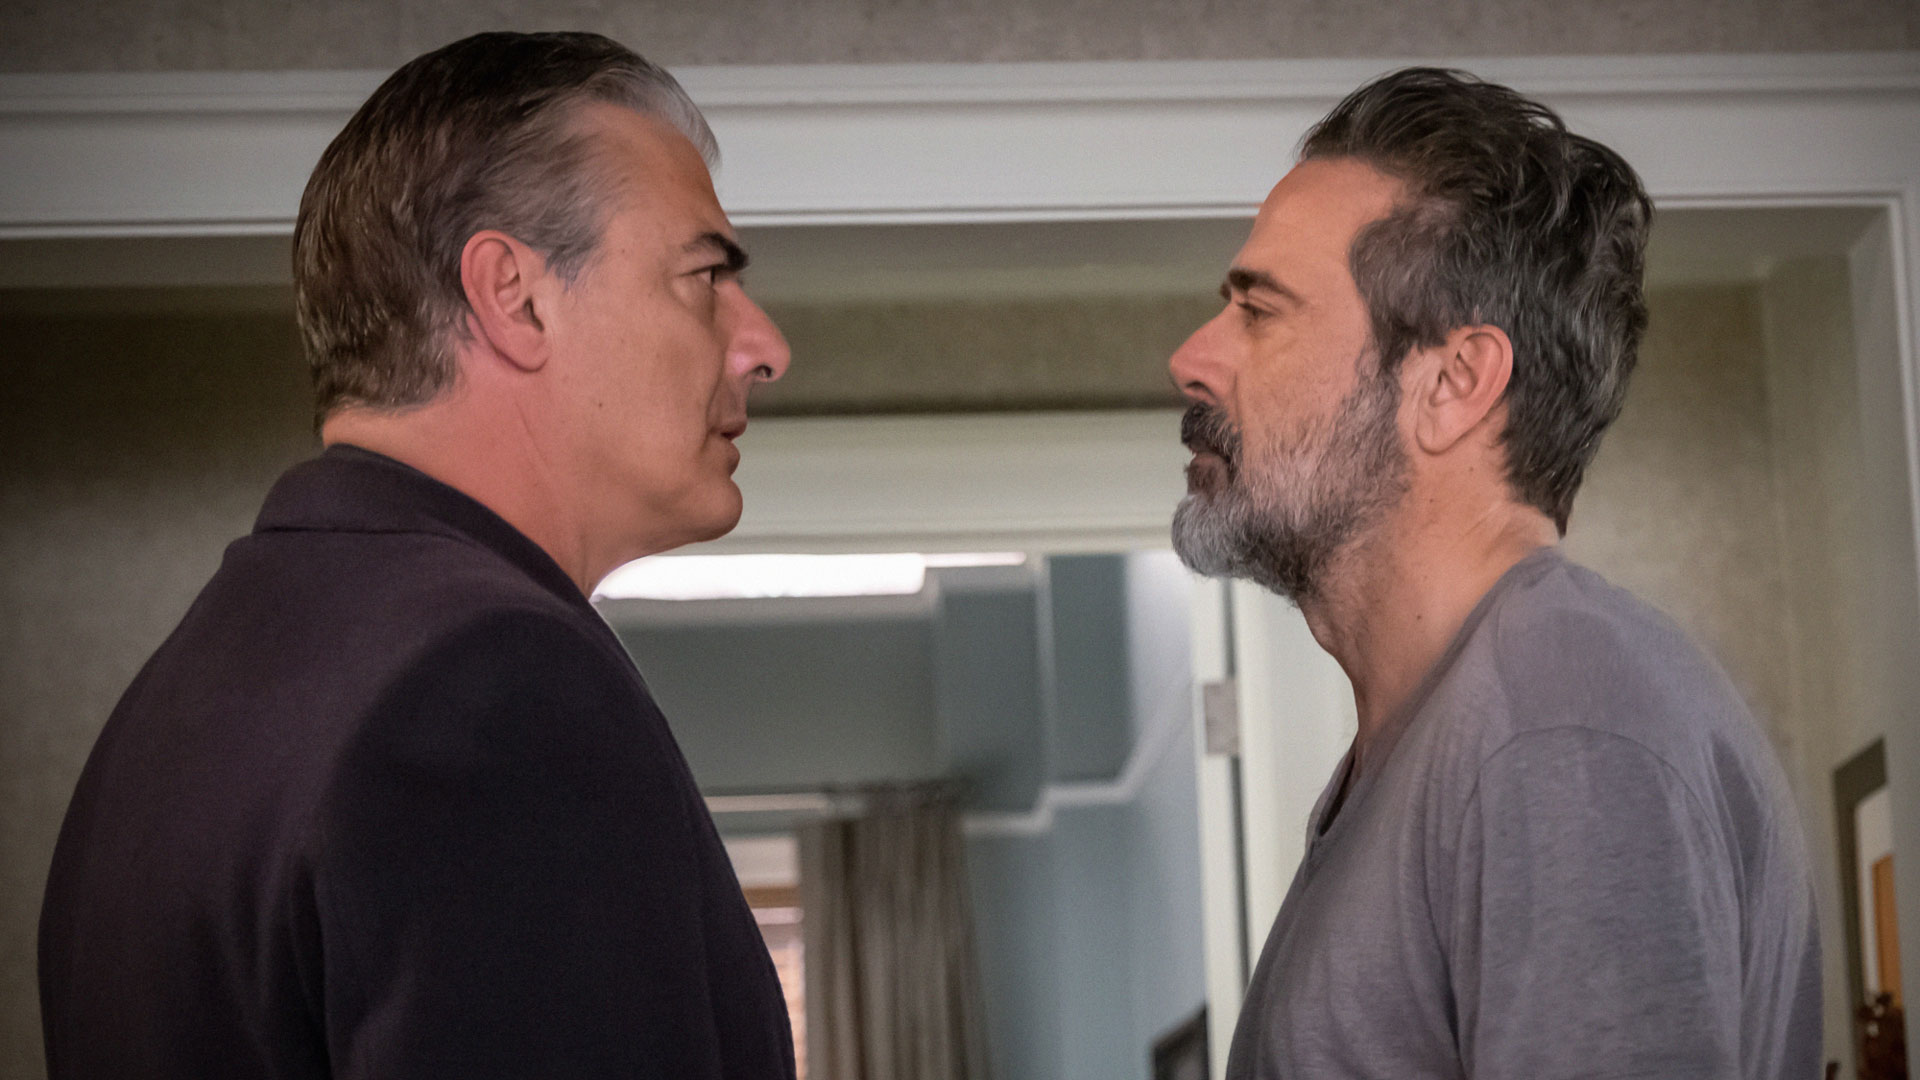 Chris Noth as Peter Florrick and Jeffrey Dean Morgan as Jason Crouse